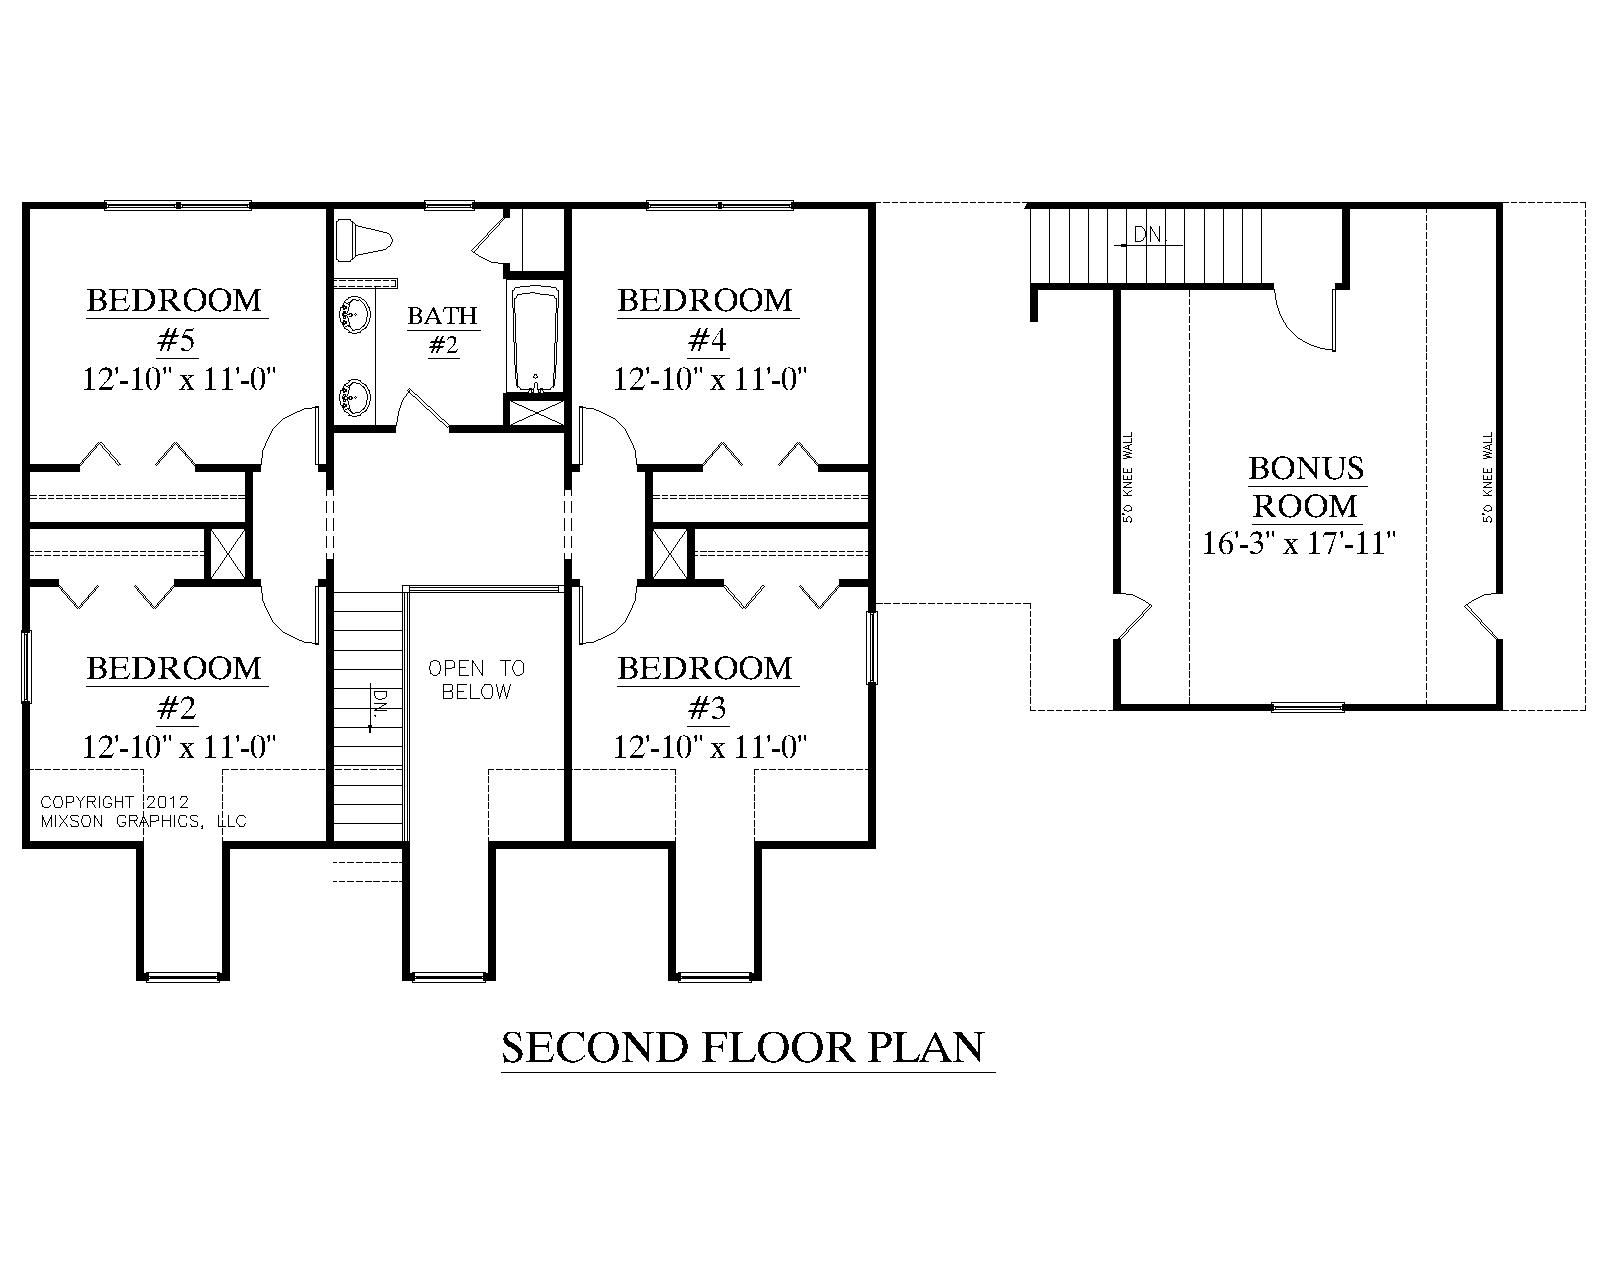 House plan 2341 a montgomery a second floor plan for House plans 1 1 2 story